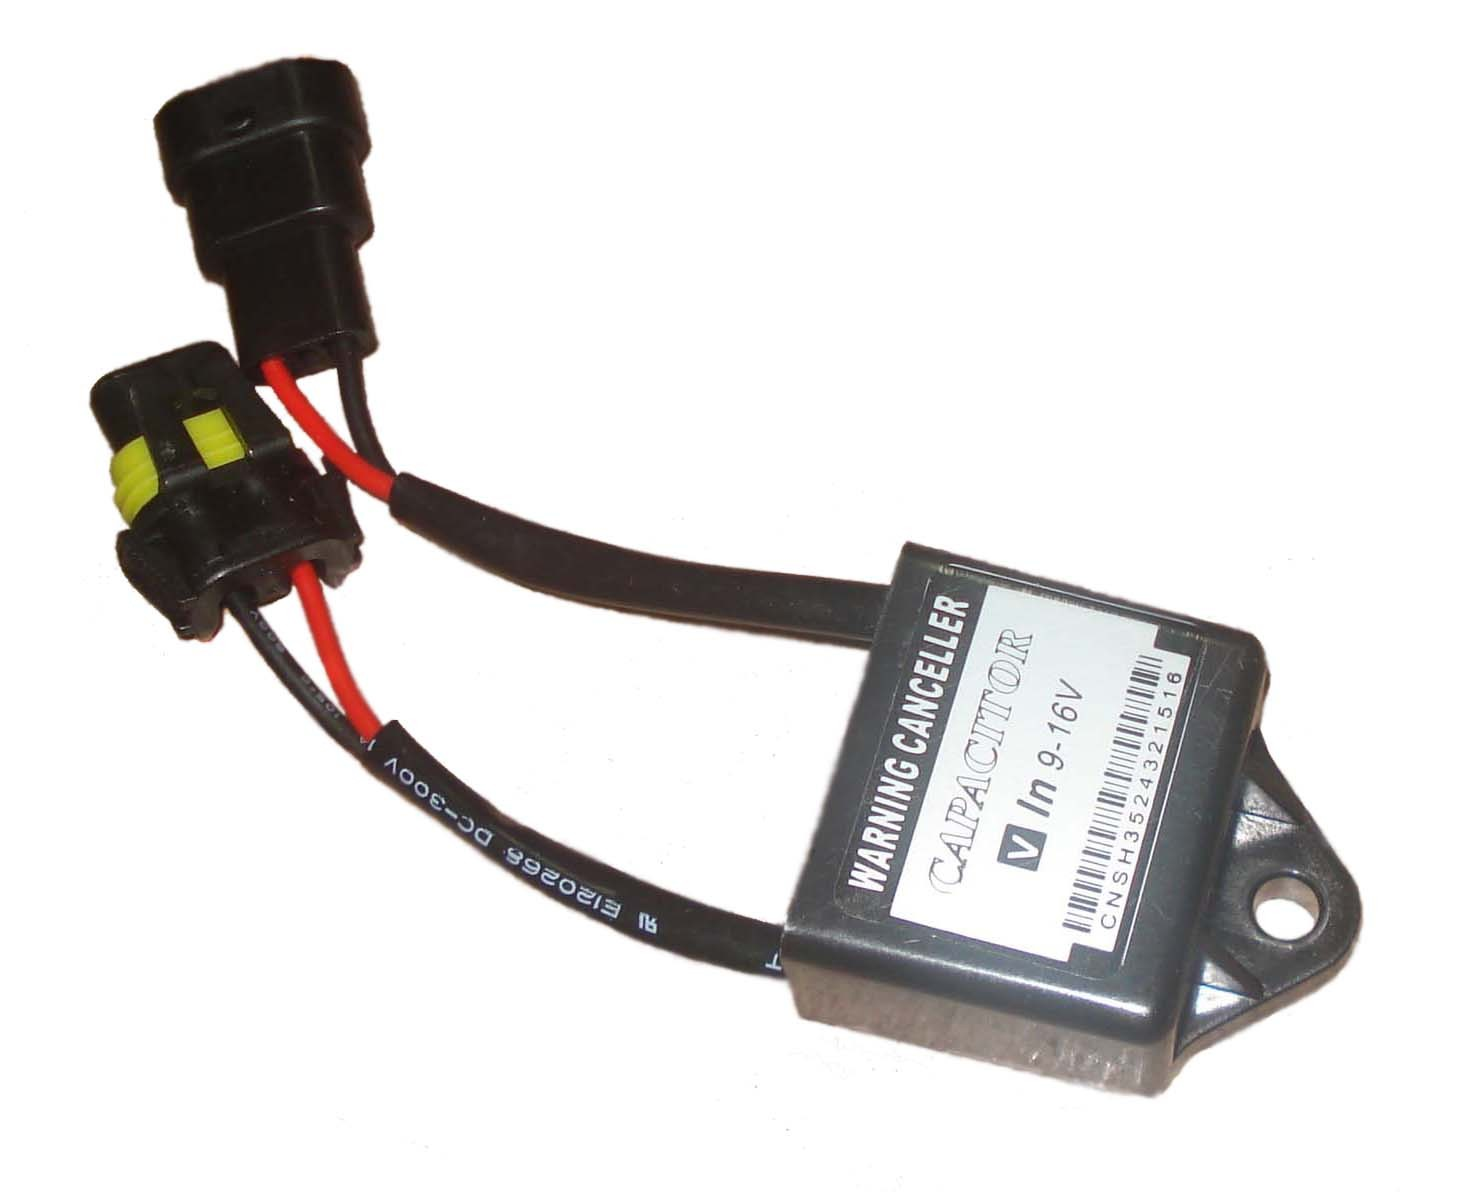 Best Relay For Hid Install Headlight Fog Light Xenon Conversion Wire Harness Kit Ebay Warning Canceller